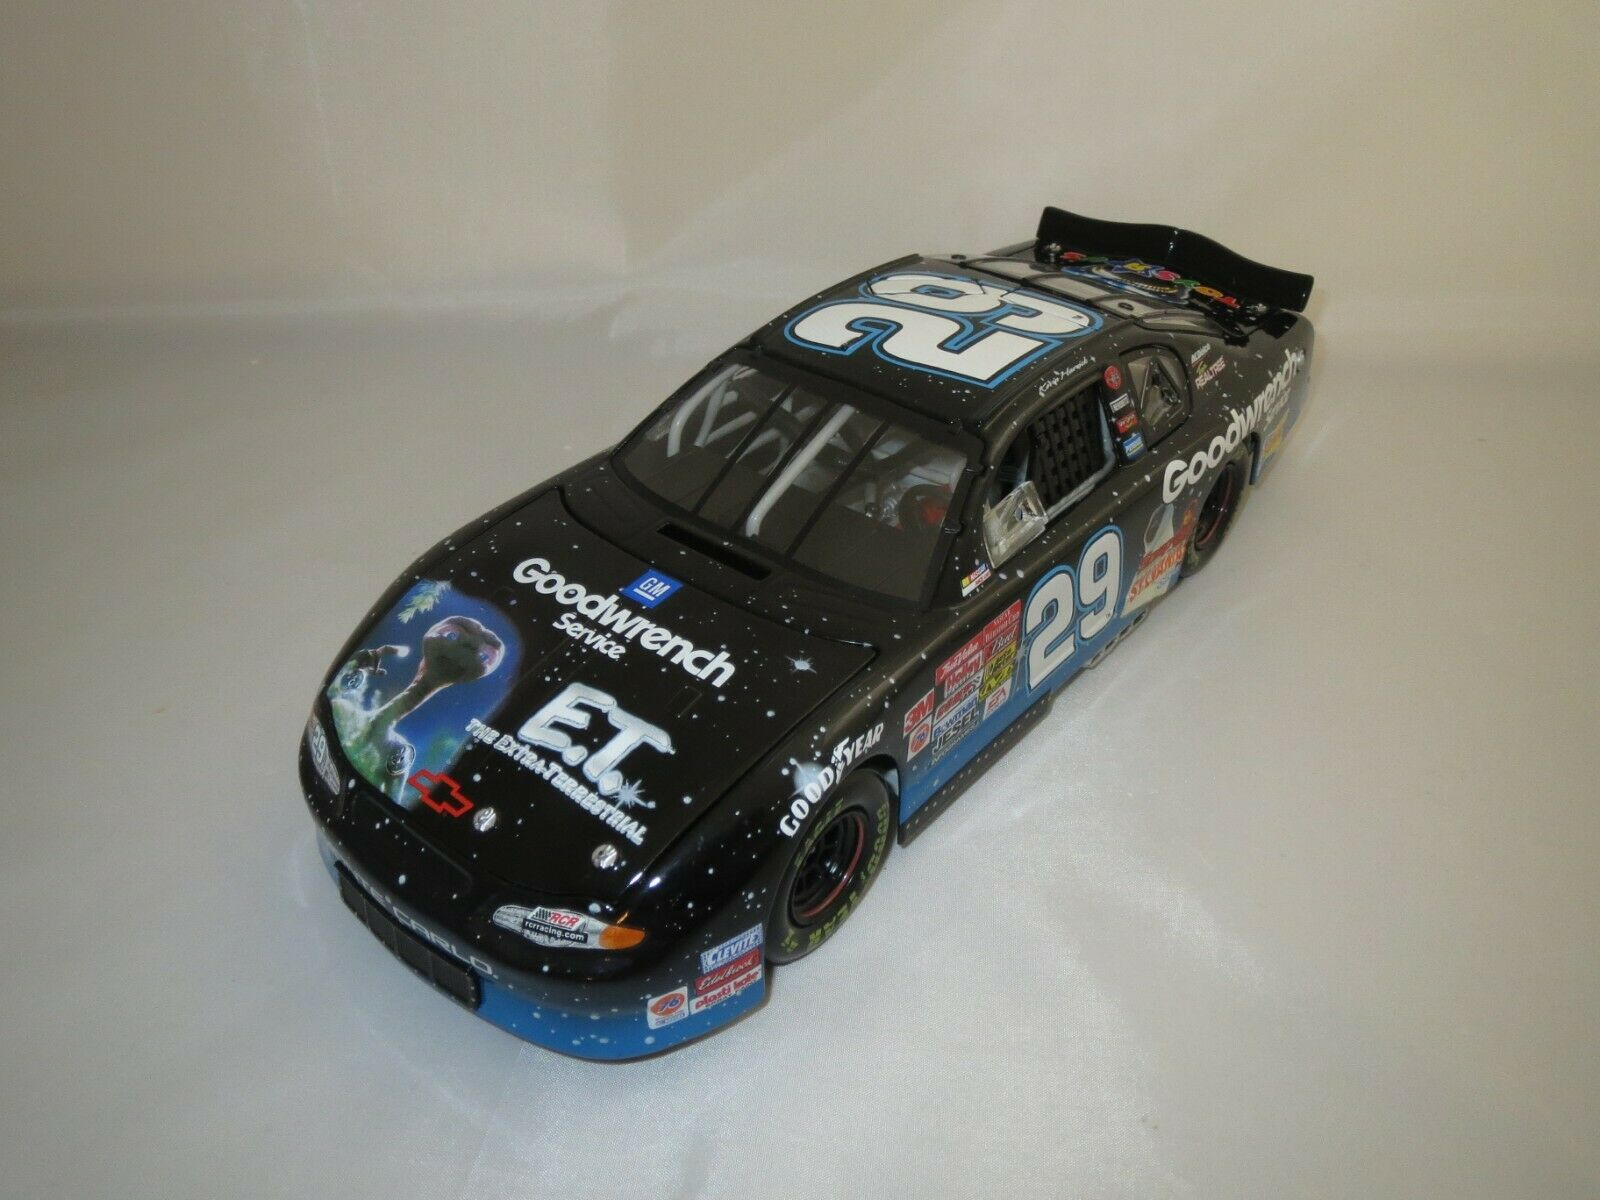 Action performance K. Harvick Monte Carlo ' 02 Goodwrench e.t. embalaje original